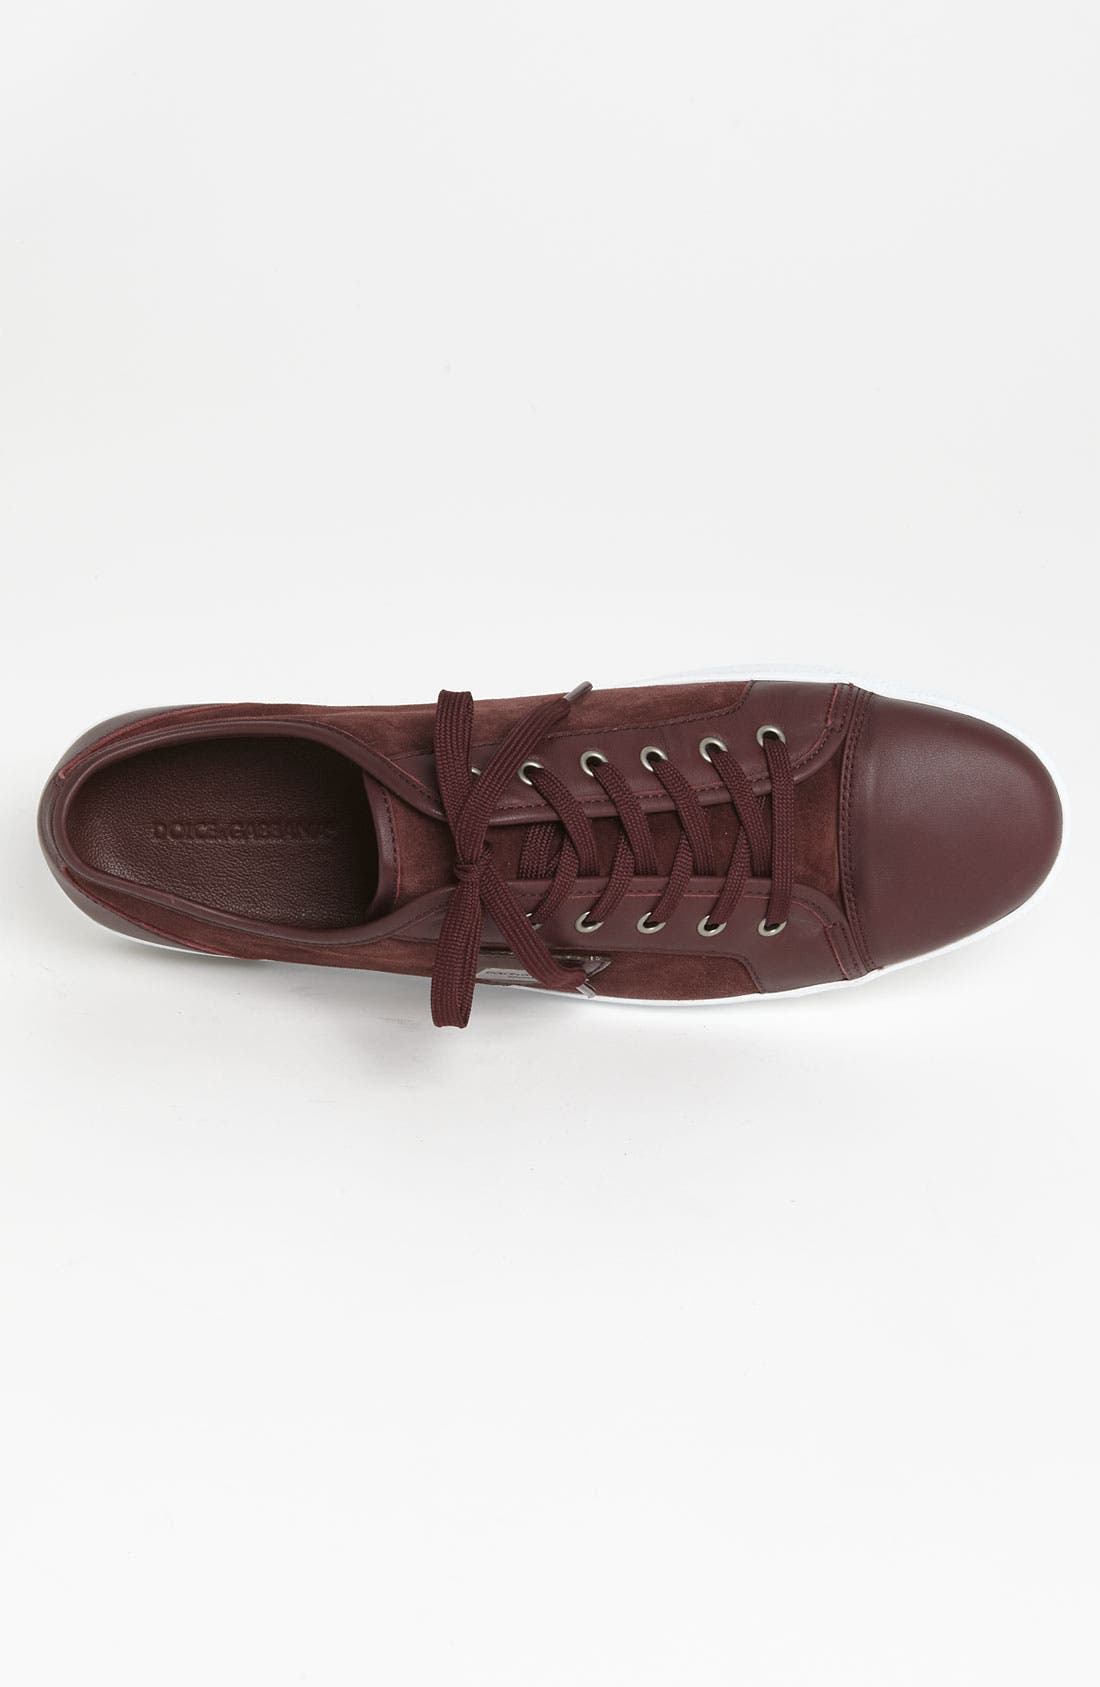 Suede Sneaker,                             Alternate thumbnail 2, color,                             601